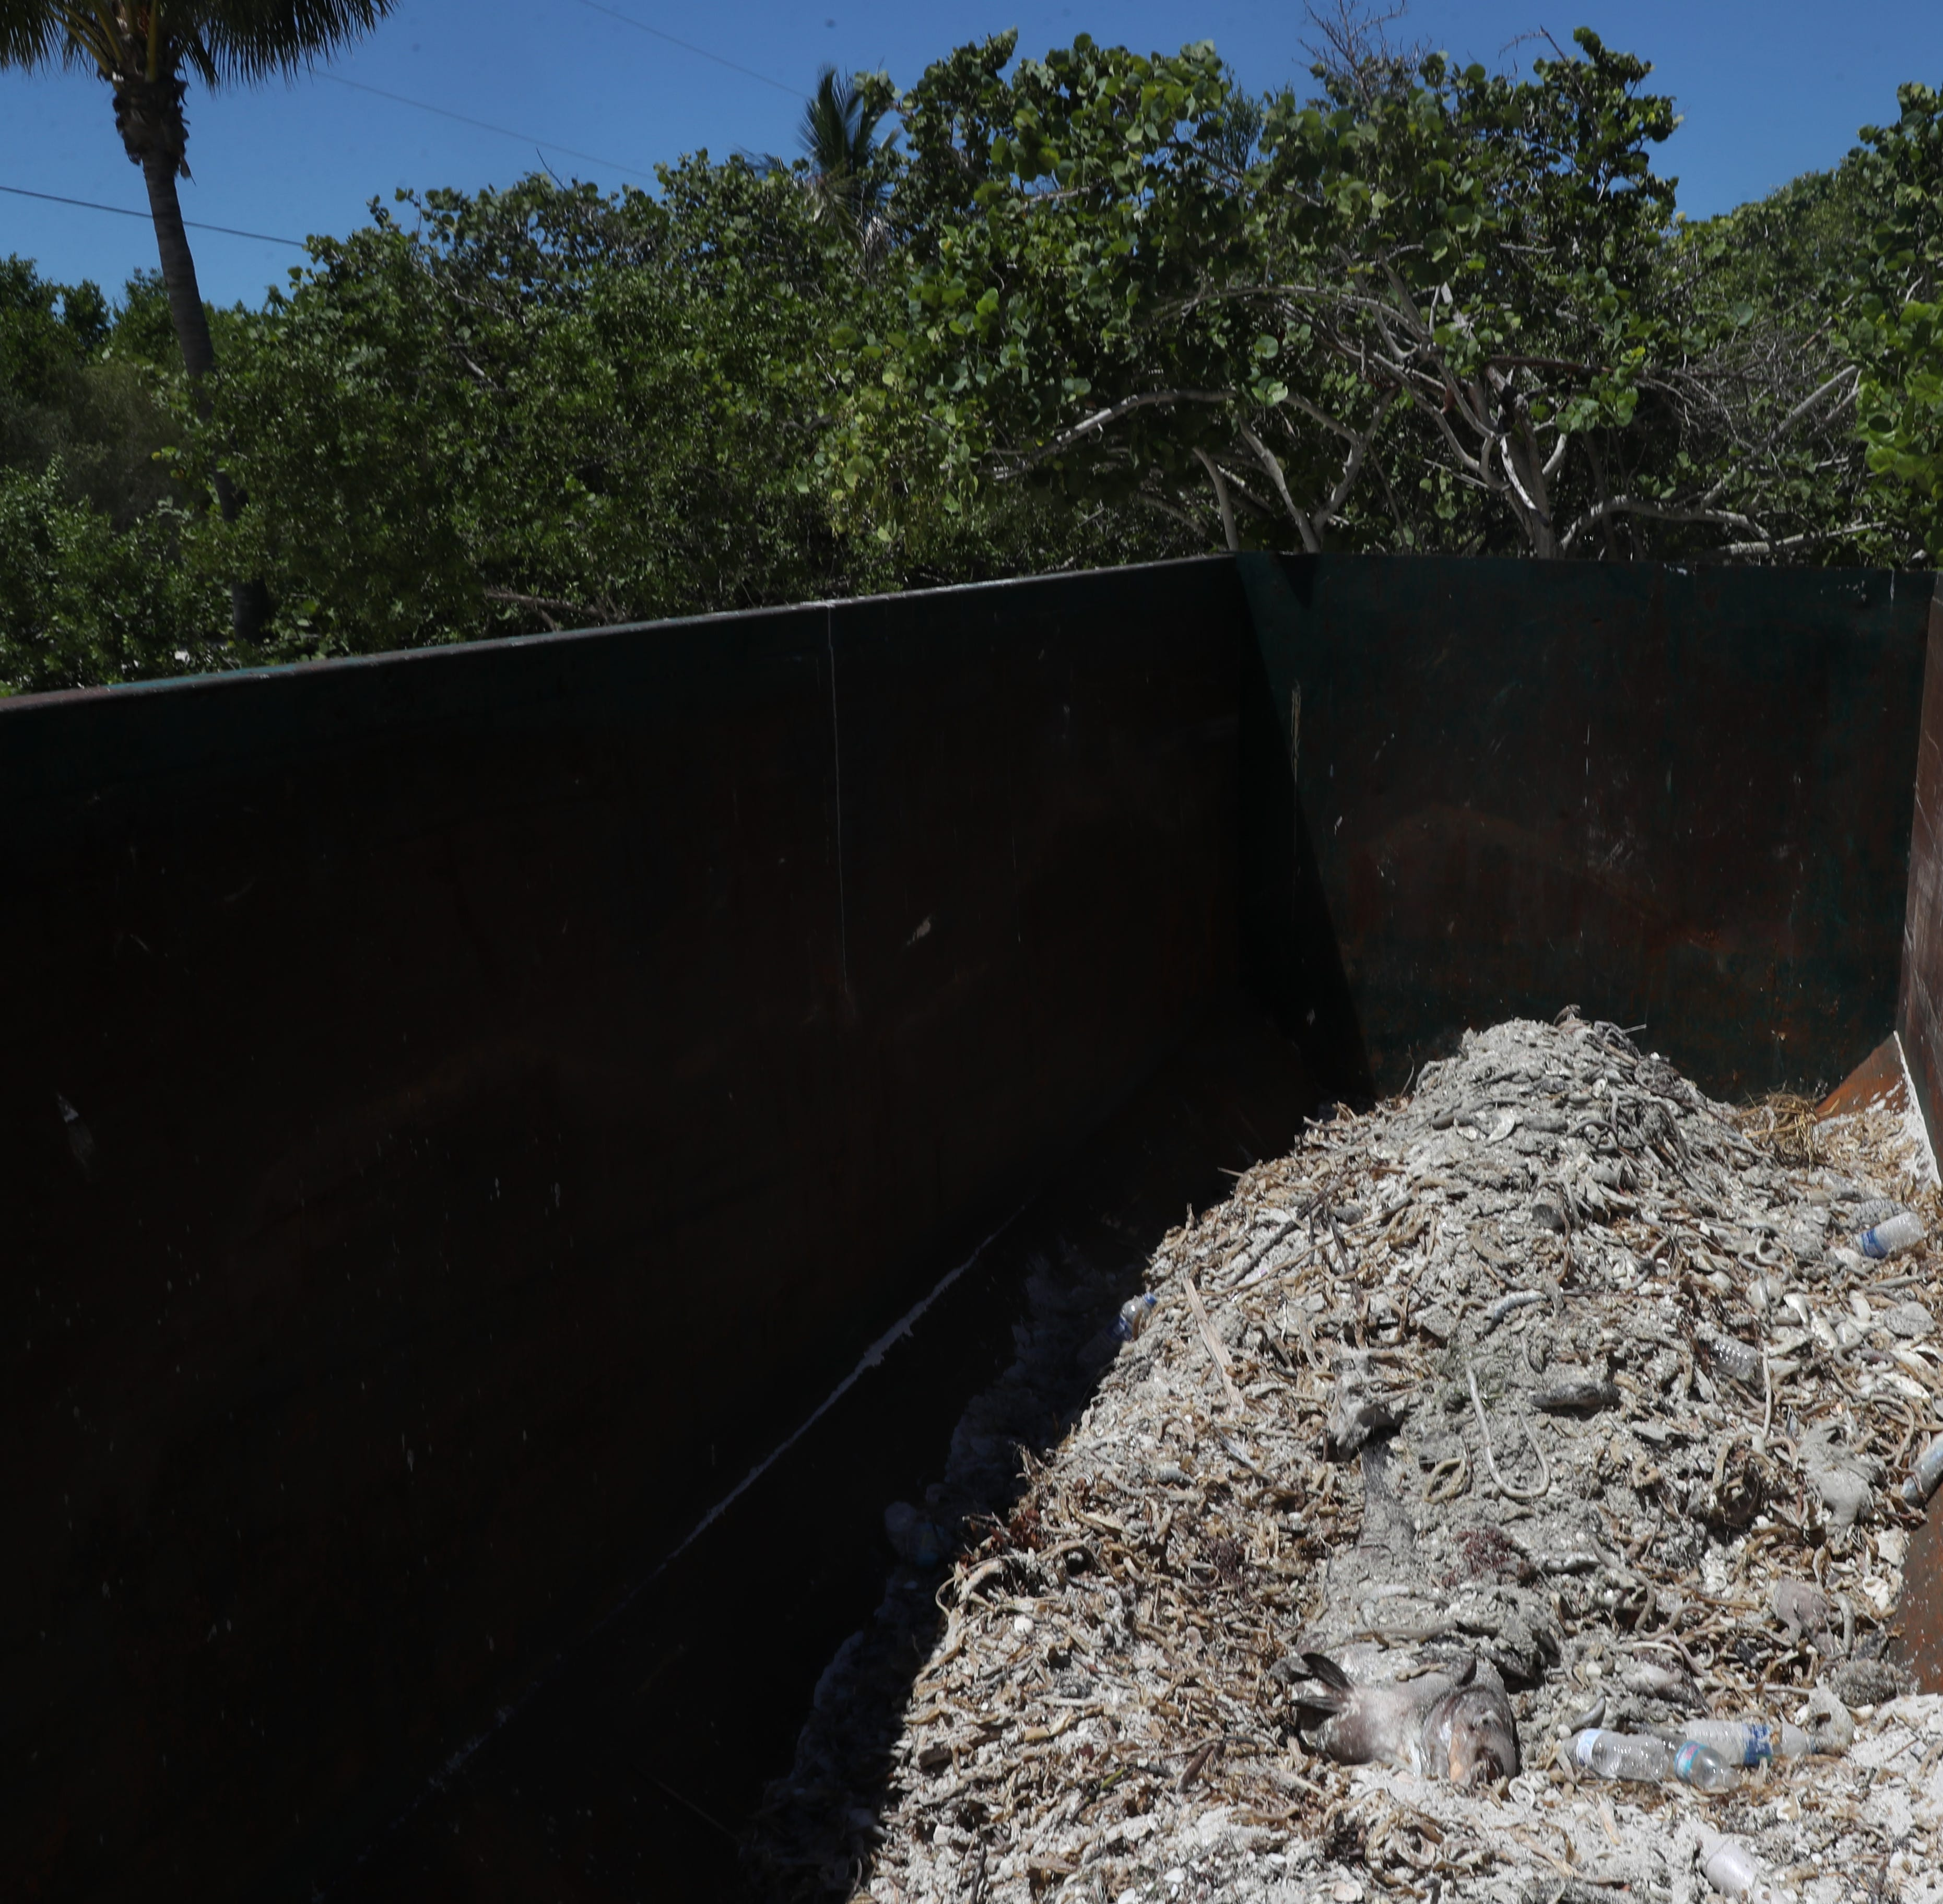 More than 2.7 million pounds of dead fish removed from Florida beaches, so far